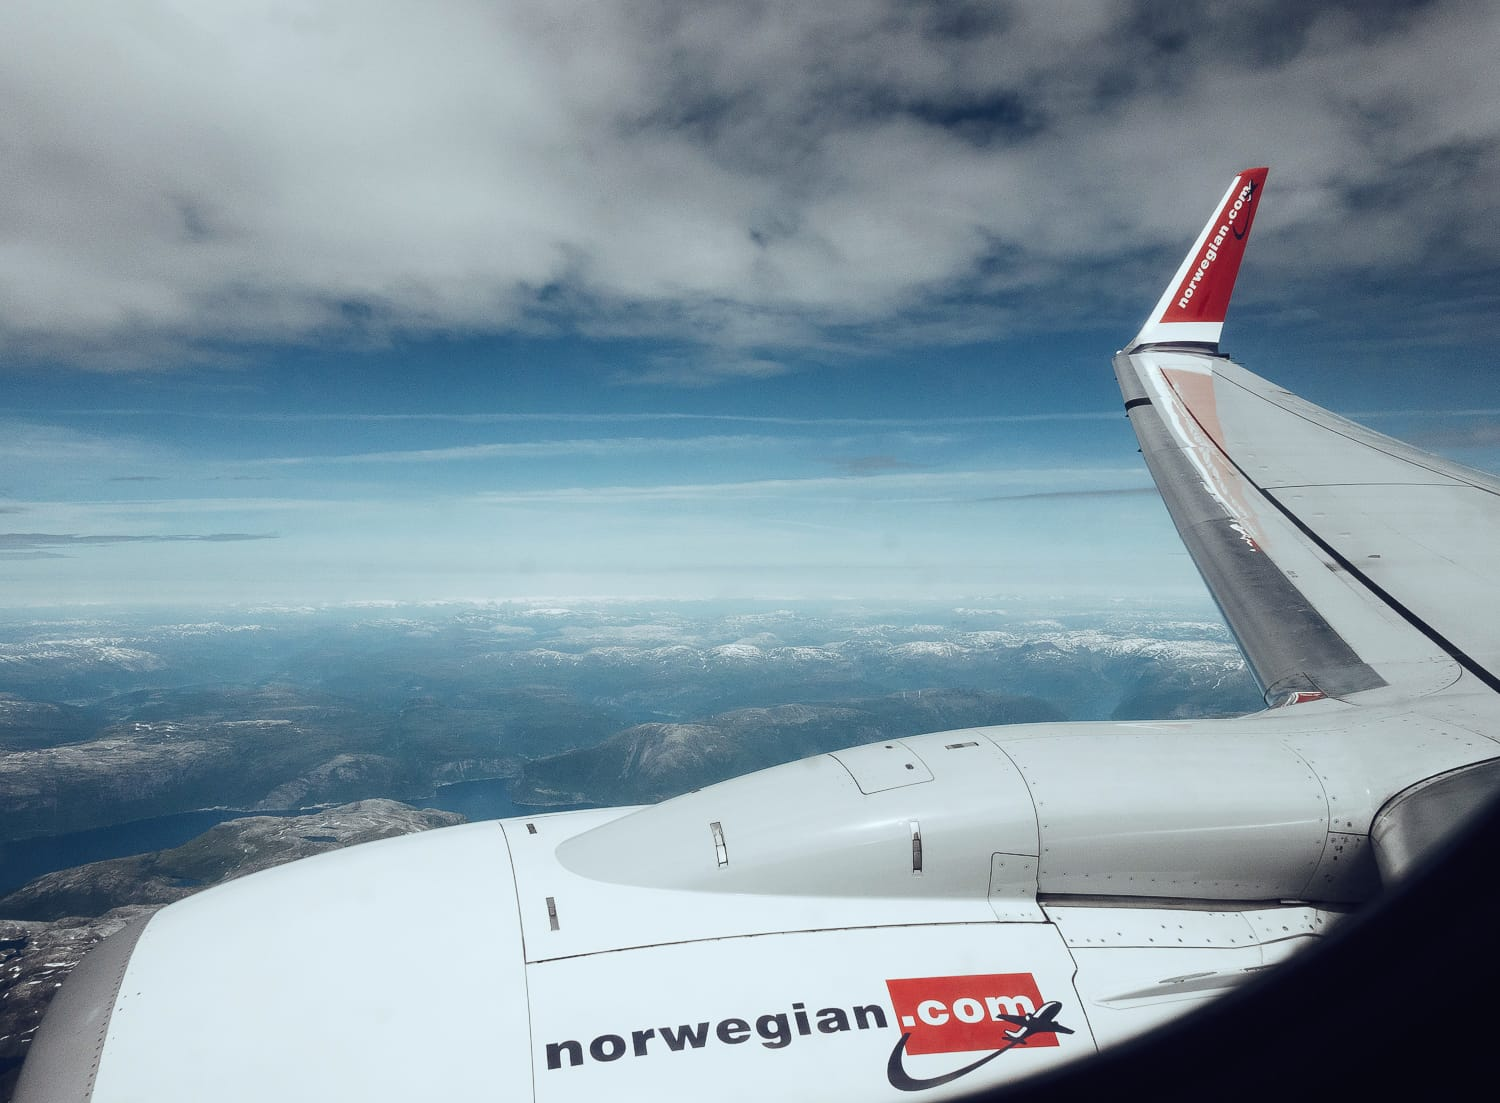 Flying in over Bergen, Norway with Norwegian